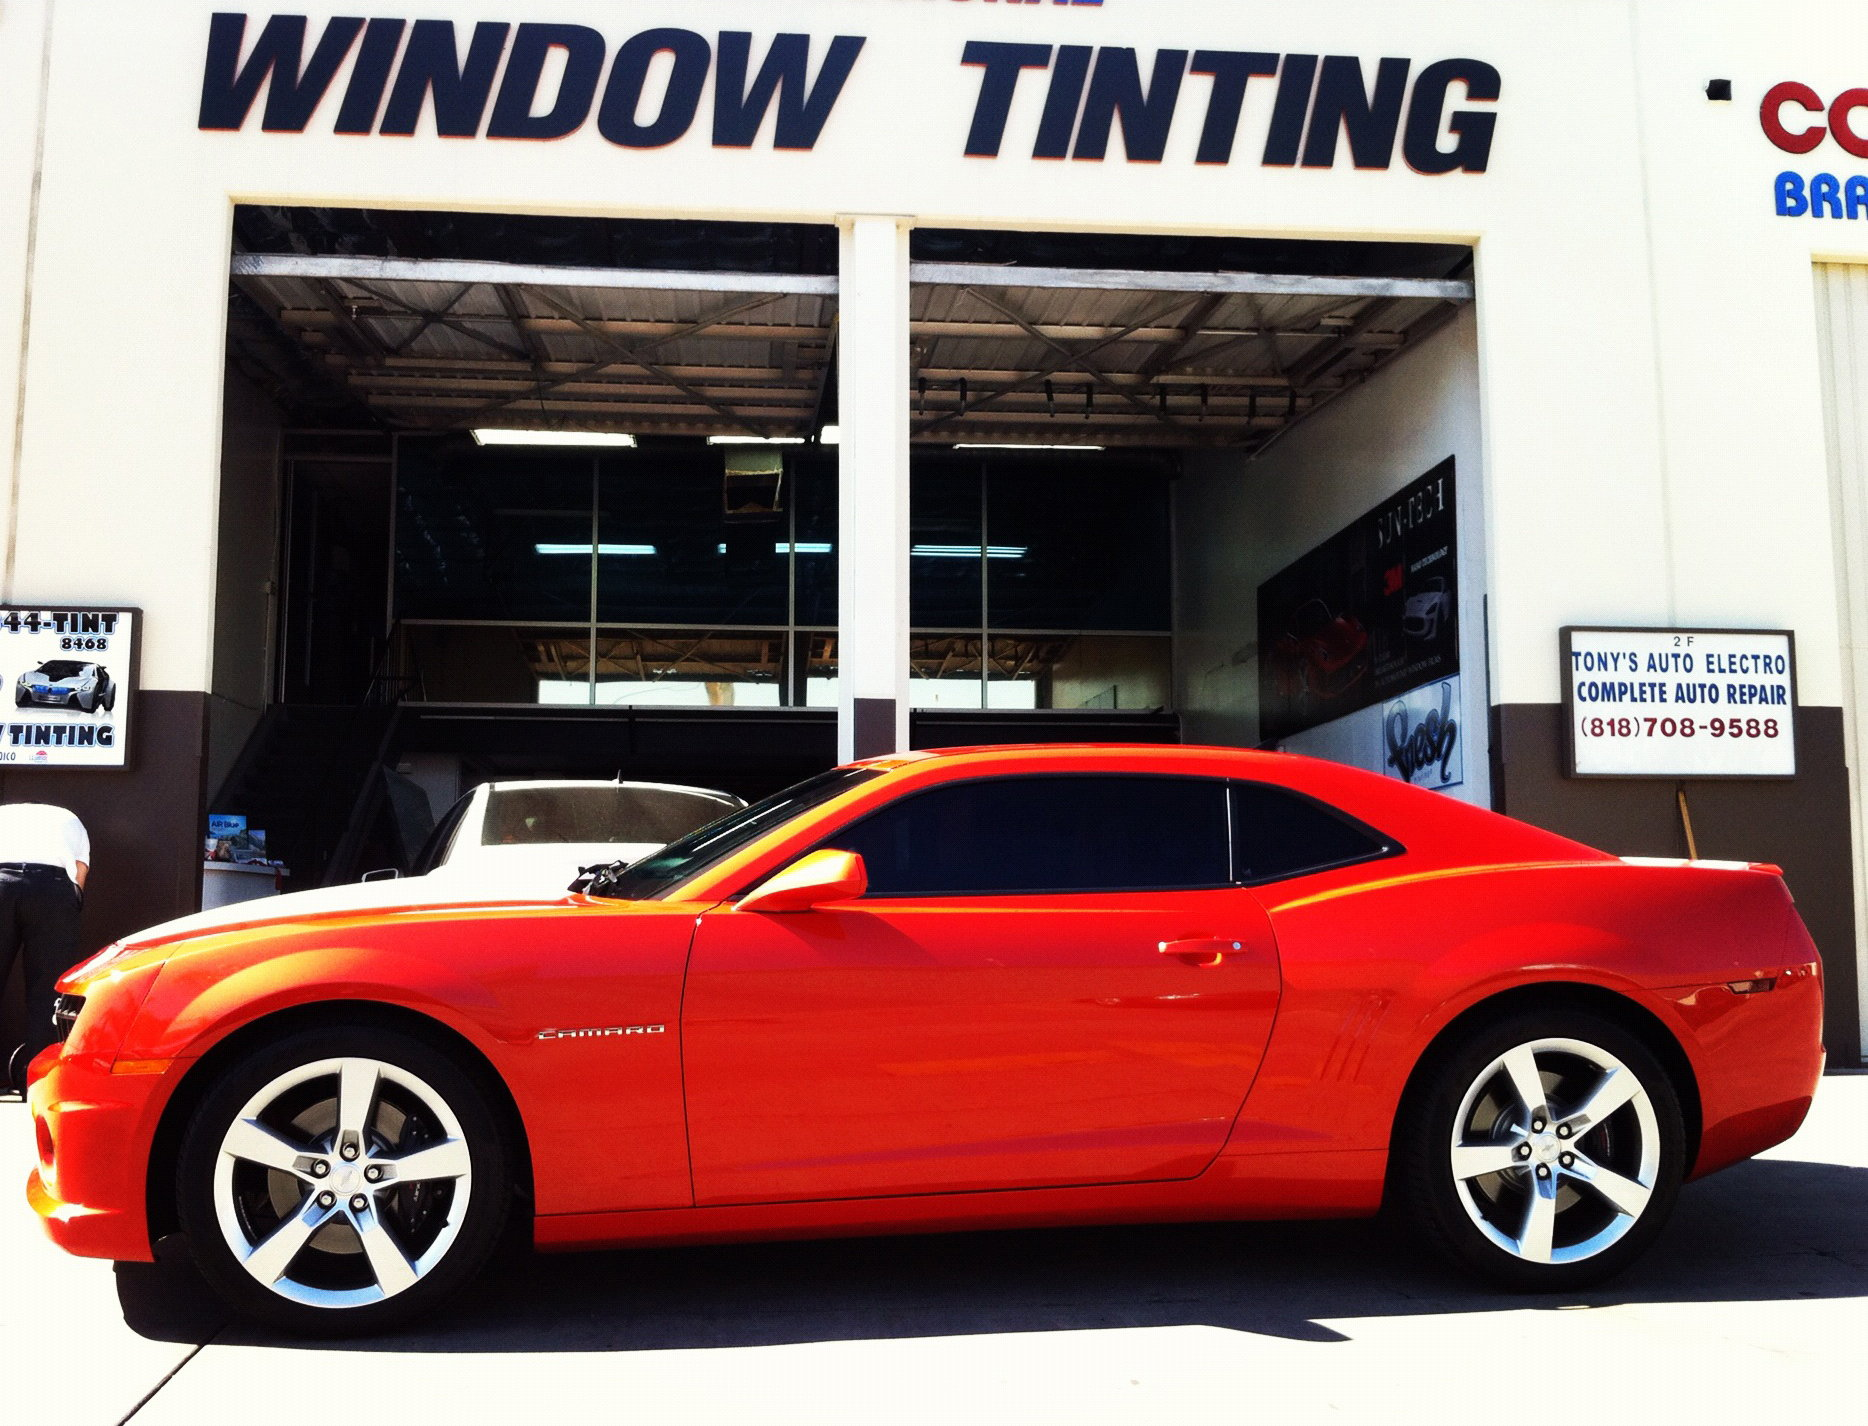 Chevrolet camaro 2010 to 2015 window tint modifications for 5 percent window tint